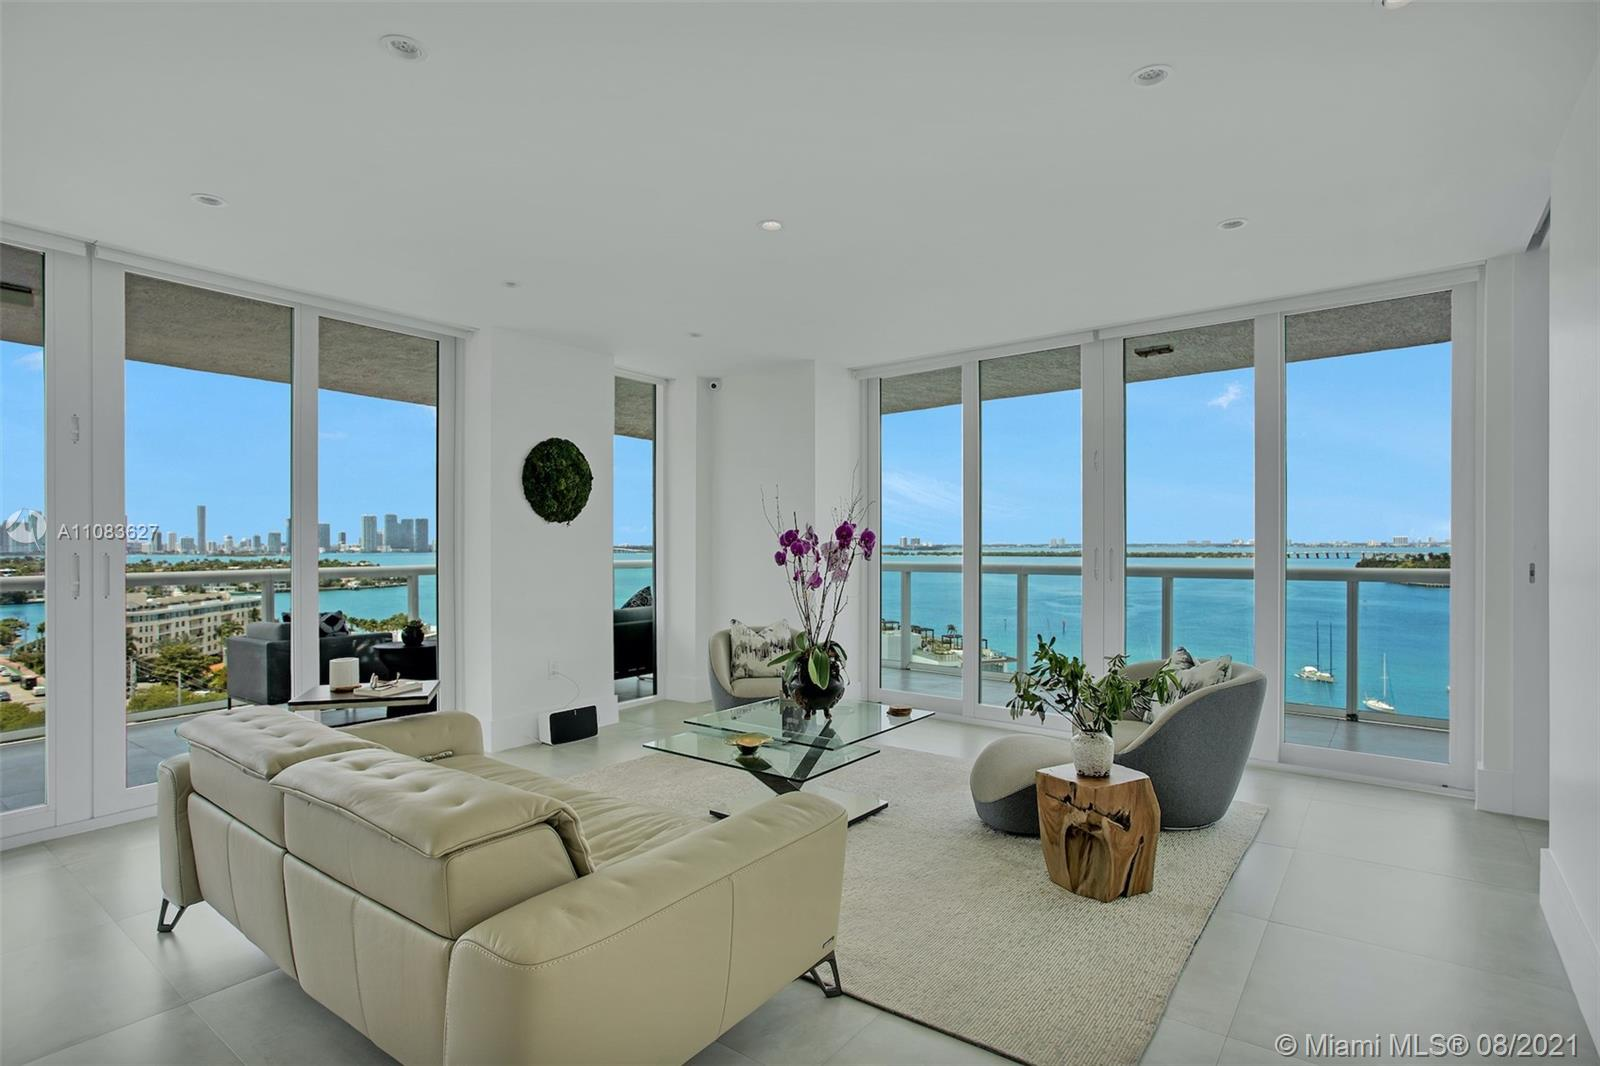 Enjoy sweeping bay & skyline views from your private wraparound balcony (665 sq. ft), & inside, floor to ceiling glass doors that surround this spacious, open-concept gem. Fully renovated, rarely available corner 2/2 at exclusive Grand Venetian w/ state-of-the art appliances and built-ins, imported chef's kitchen replete with Italian cabinetry, Wolf steam & convection ovens, induction stovetop, built-in espresso machine, Sub-Zero fridge & wine fridge. Imported porcelain floors flow seamlessly interior to terrace. Smart home technology wired in-ceiling speakers for Sonos, video monitoring, Lutron remote control blinds, and lighting throughout. Brand new resort-style pool & fitness center, tennis, outdoor kitchen, 24-hour concierge service. Incl. 2 assigned parking spaces & valet.